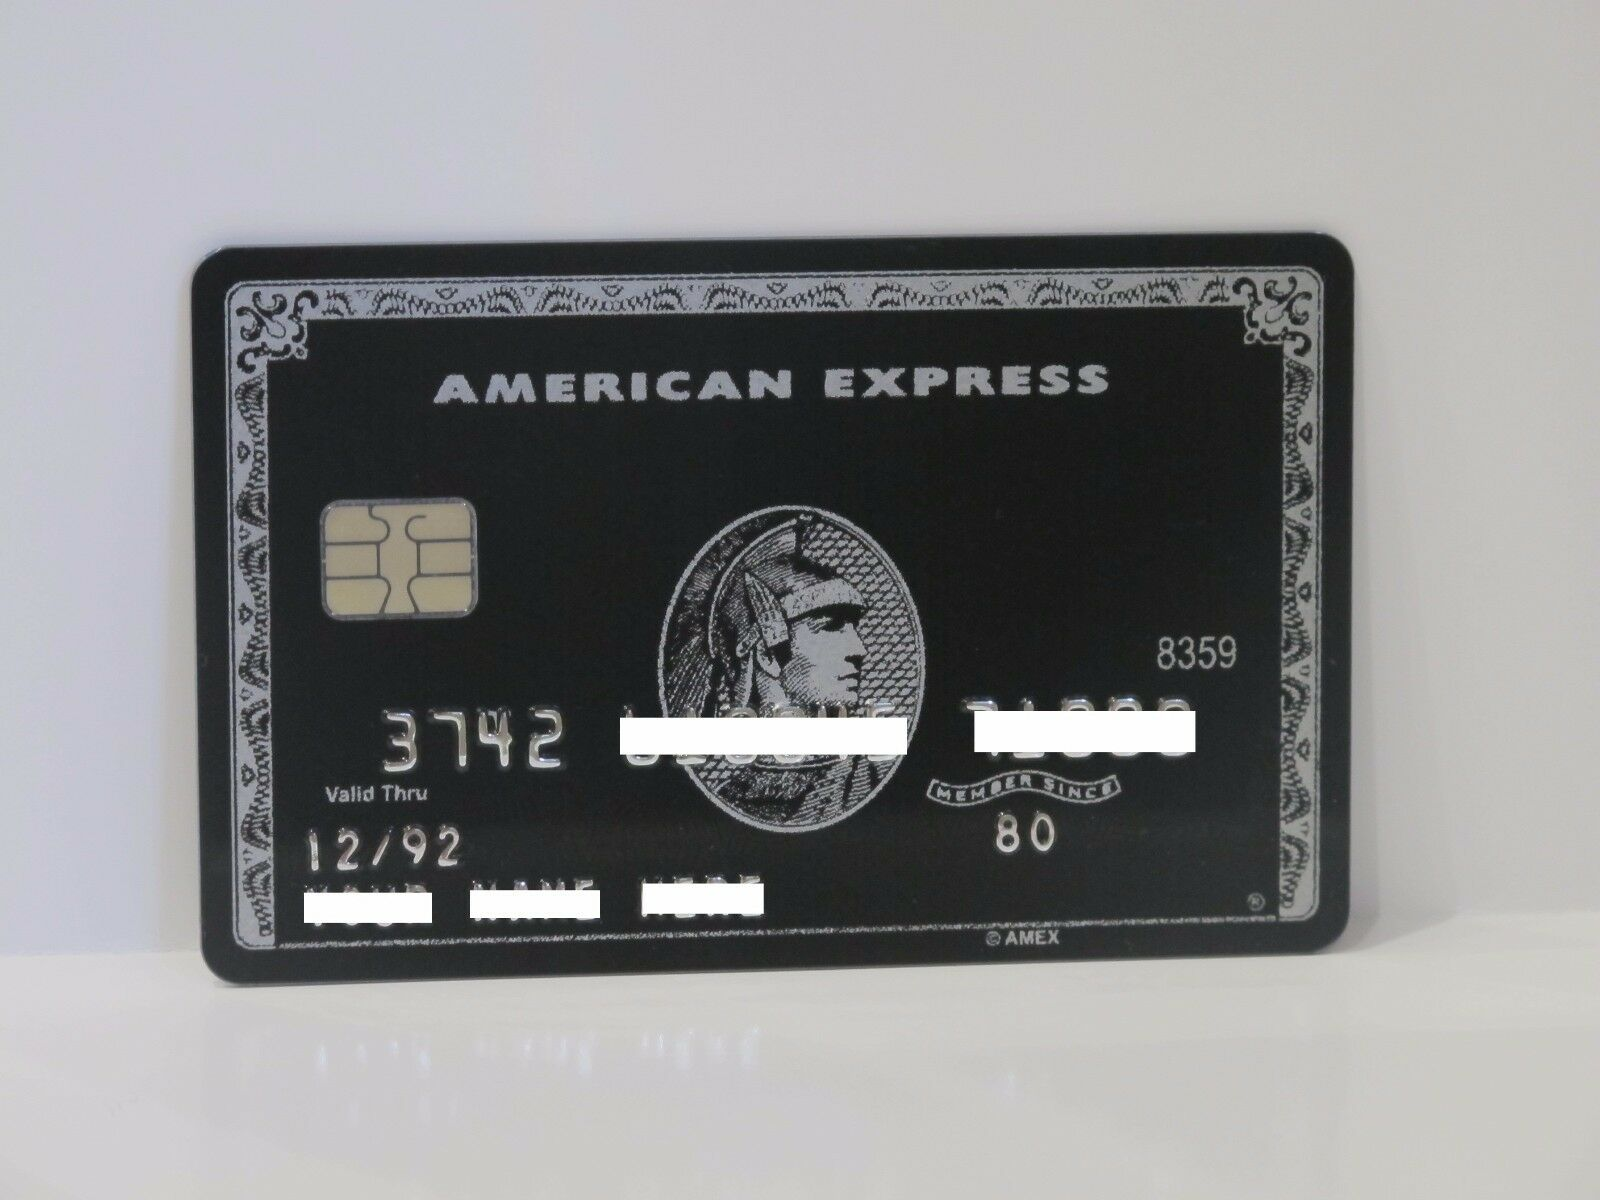 AMERICAN EXPRESS BLACK Centurion Card Amex With Chip - $48.53   PicClick